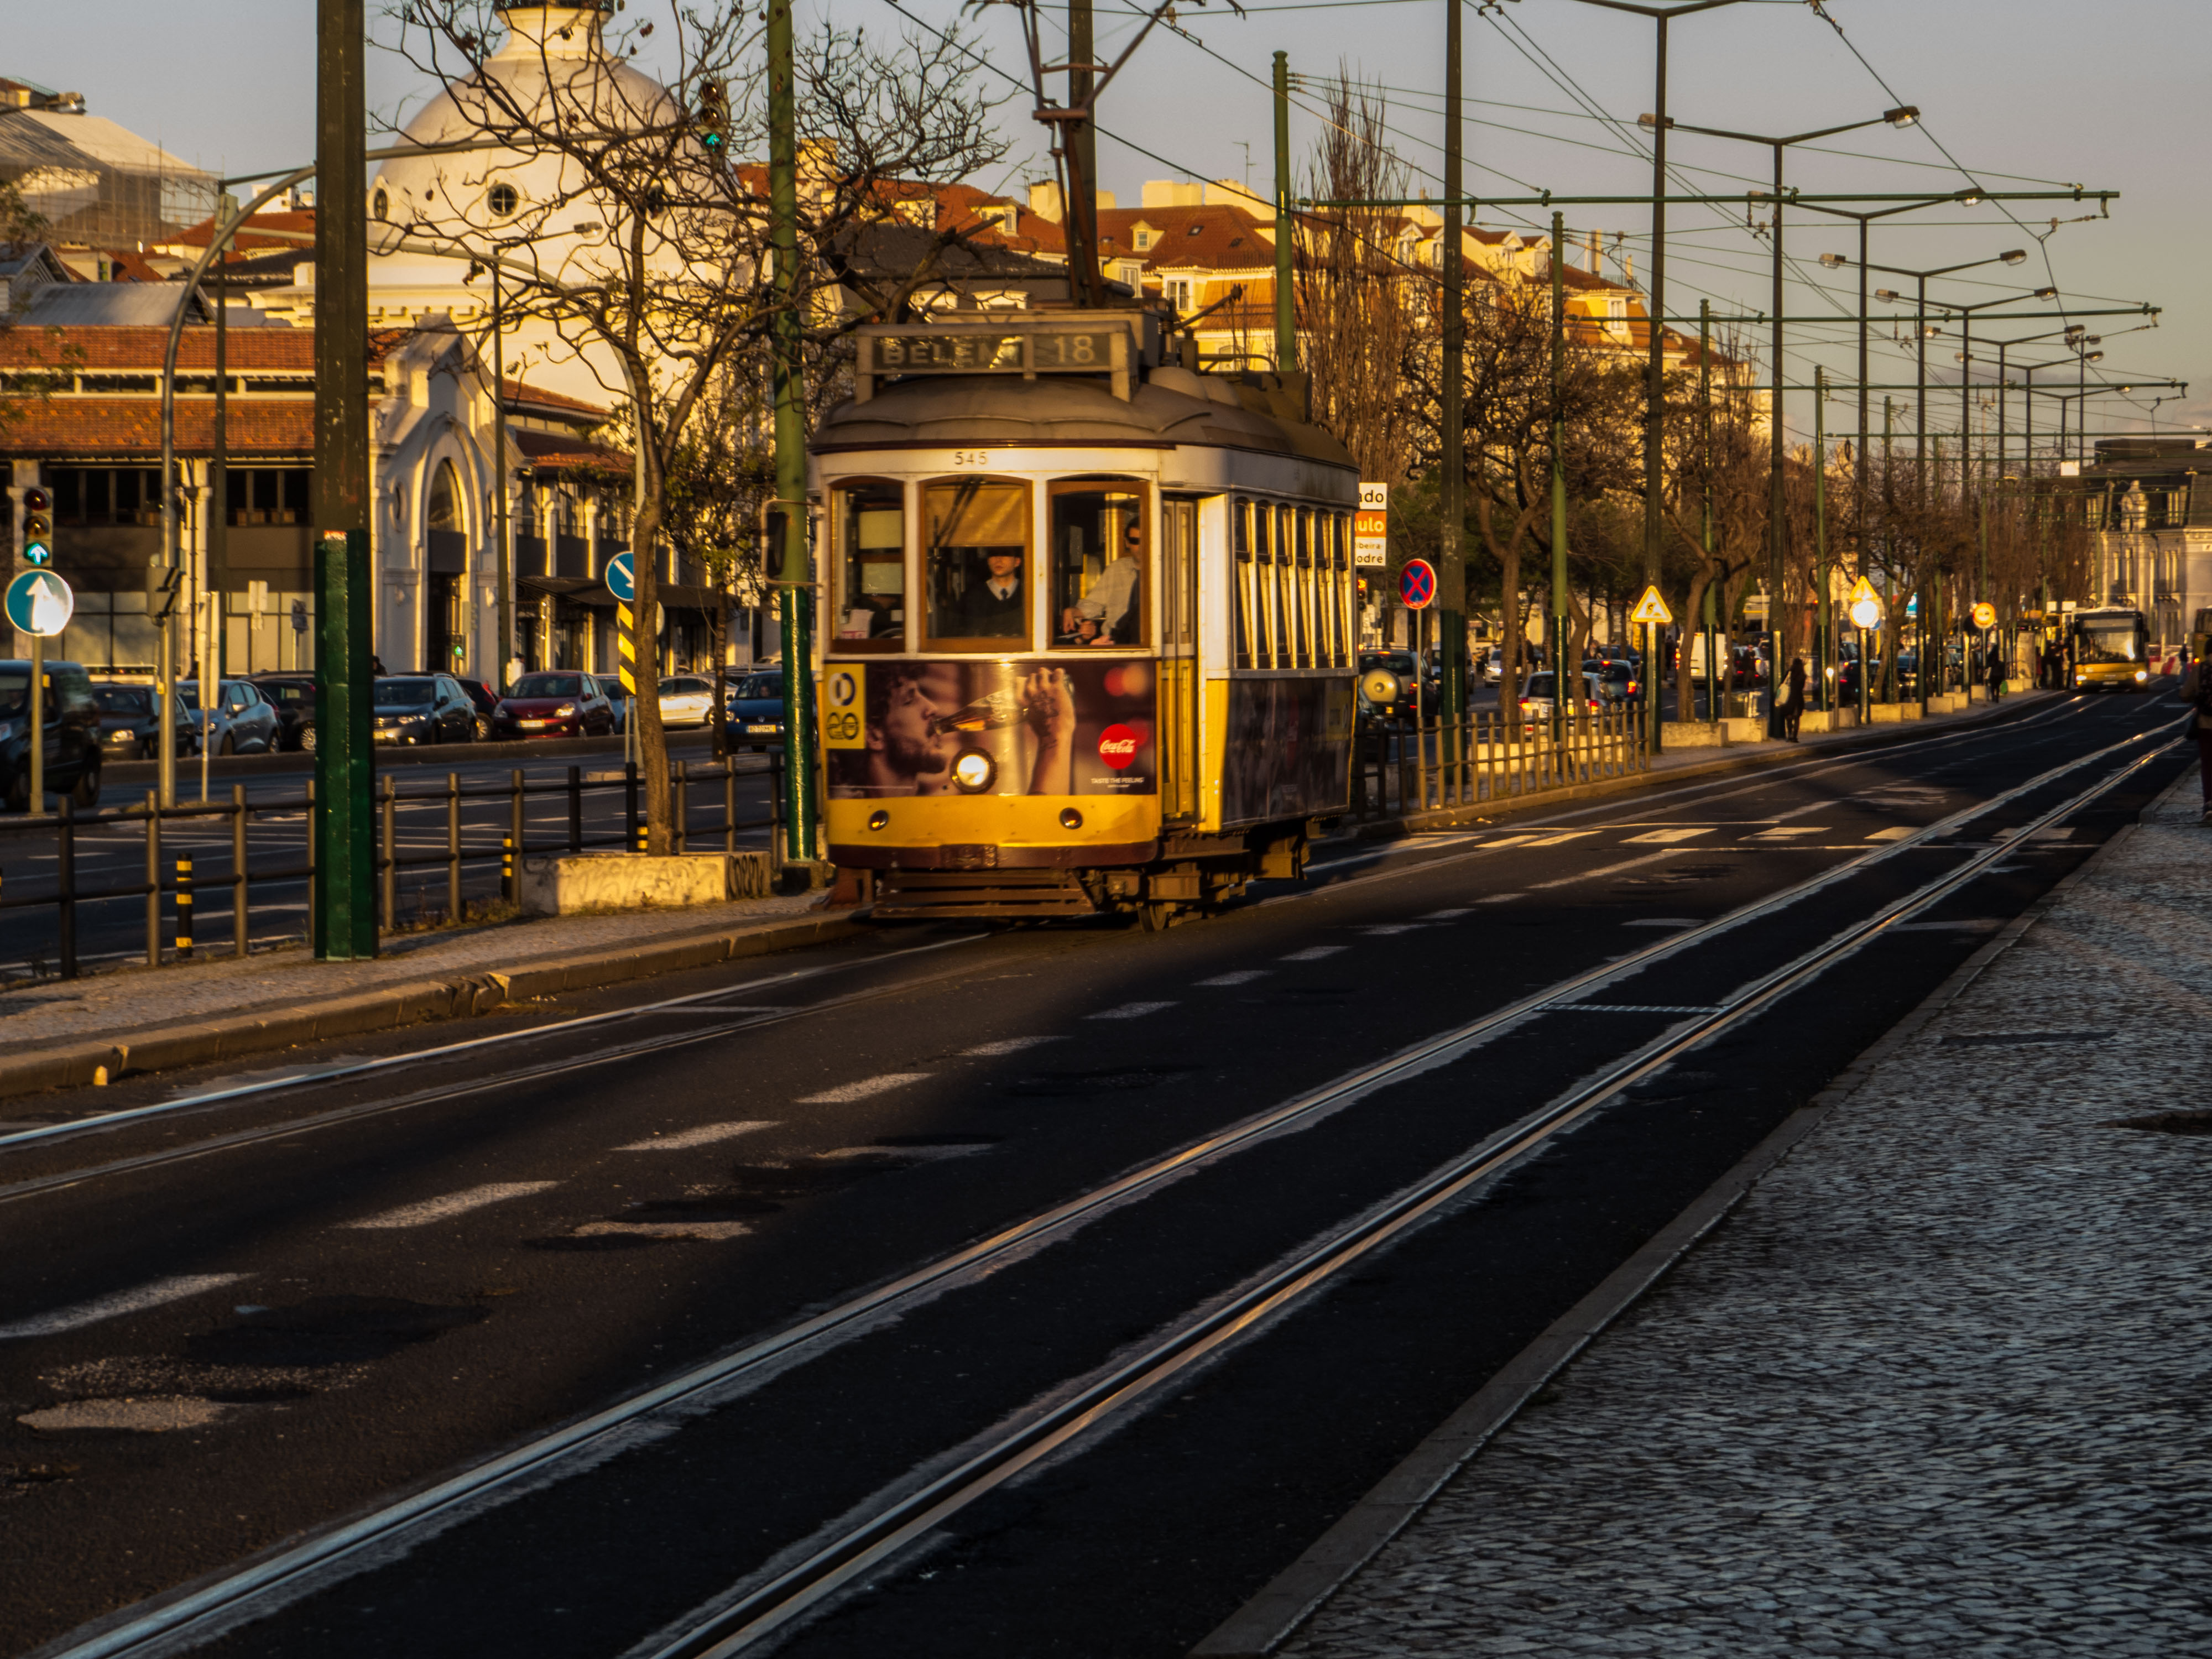 Old tram, Auto, City, Evening, Old, HQ Photo